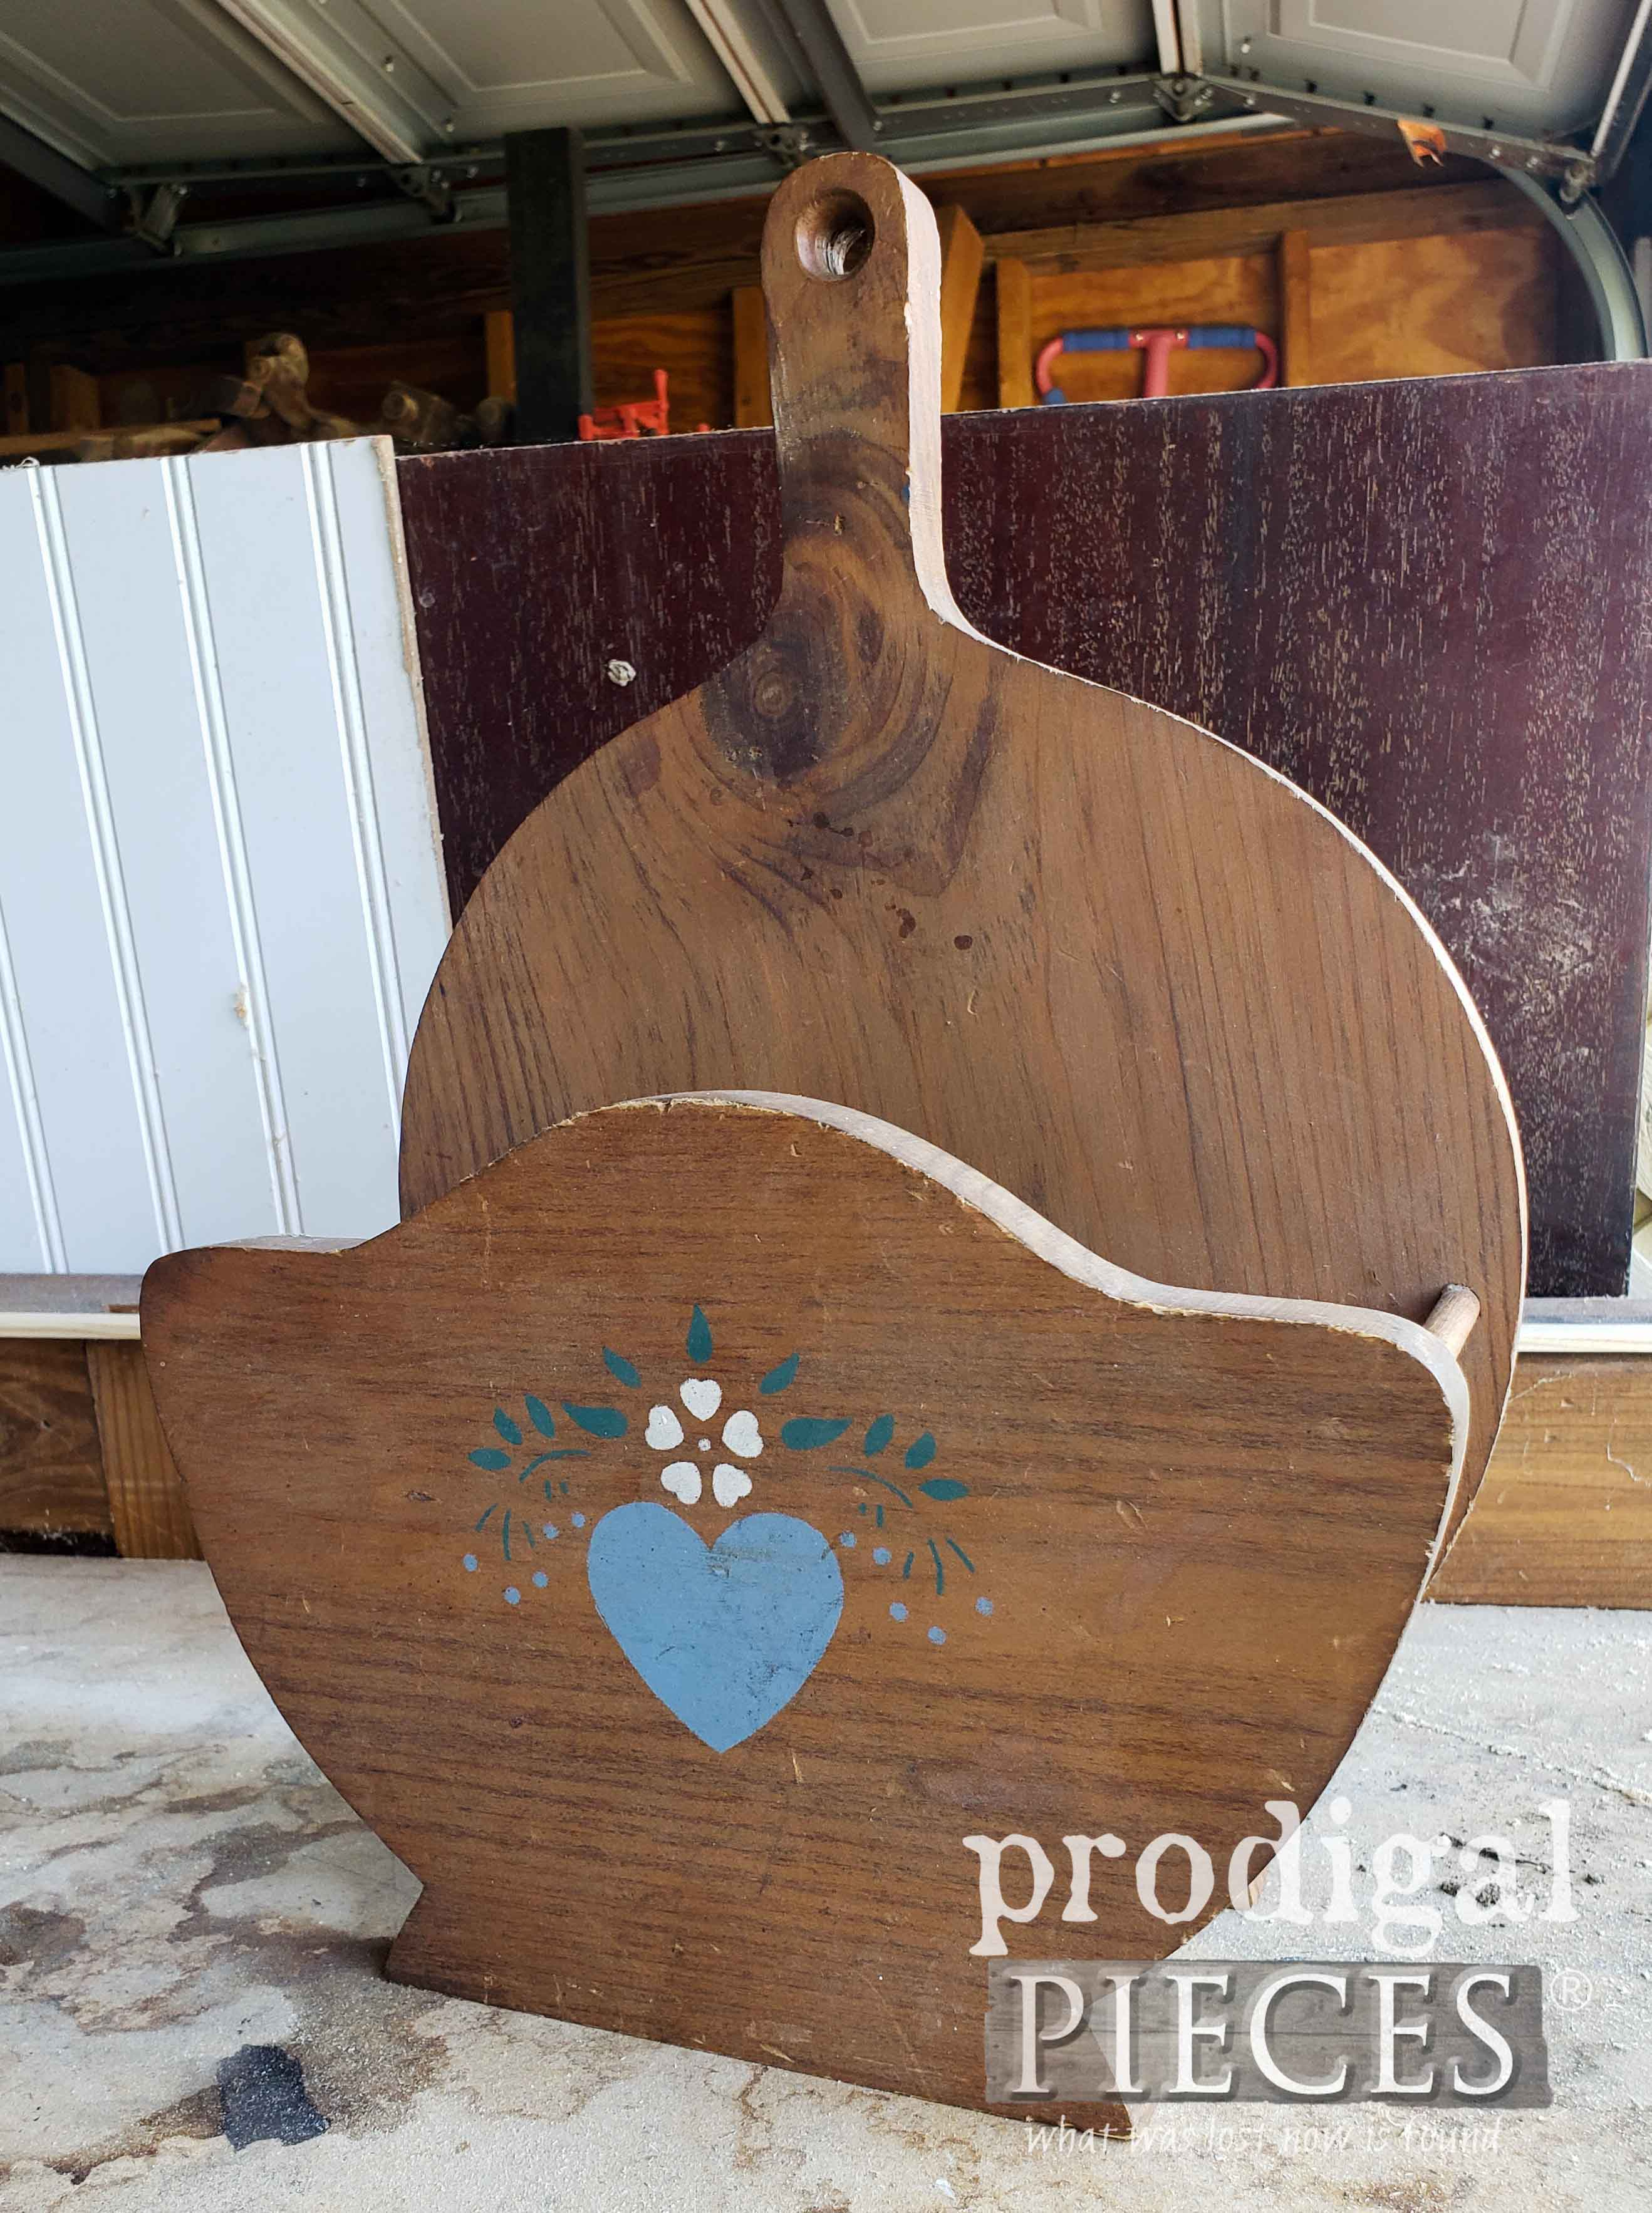 Vintage Paper Plate Holder Before Upcycle by Larissa of Prodigal Pieces | prodigalpieces.com